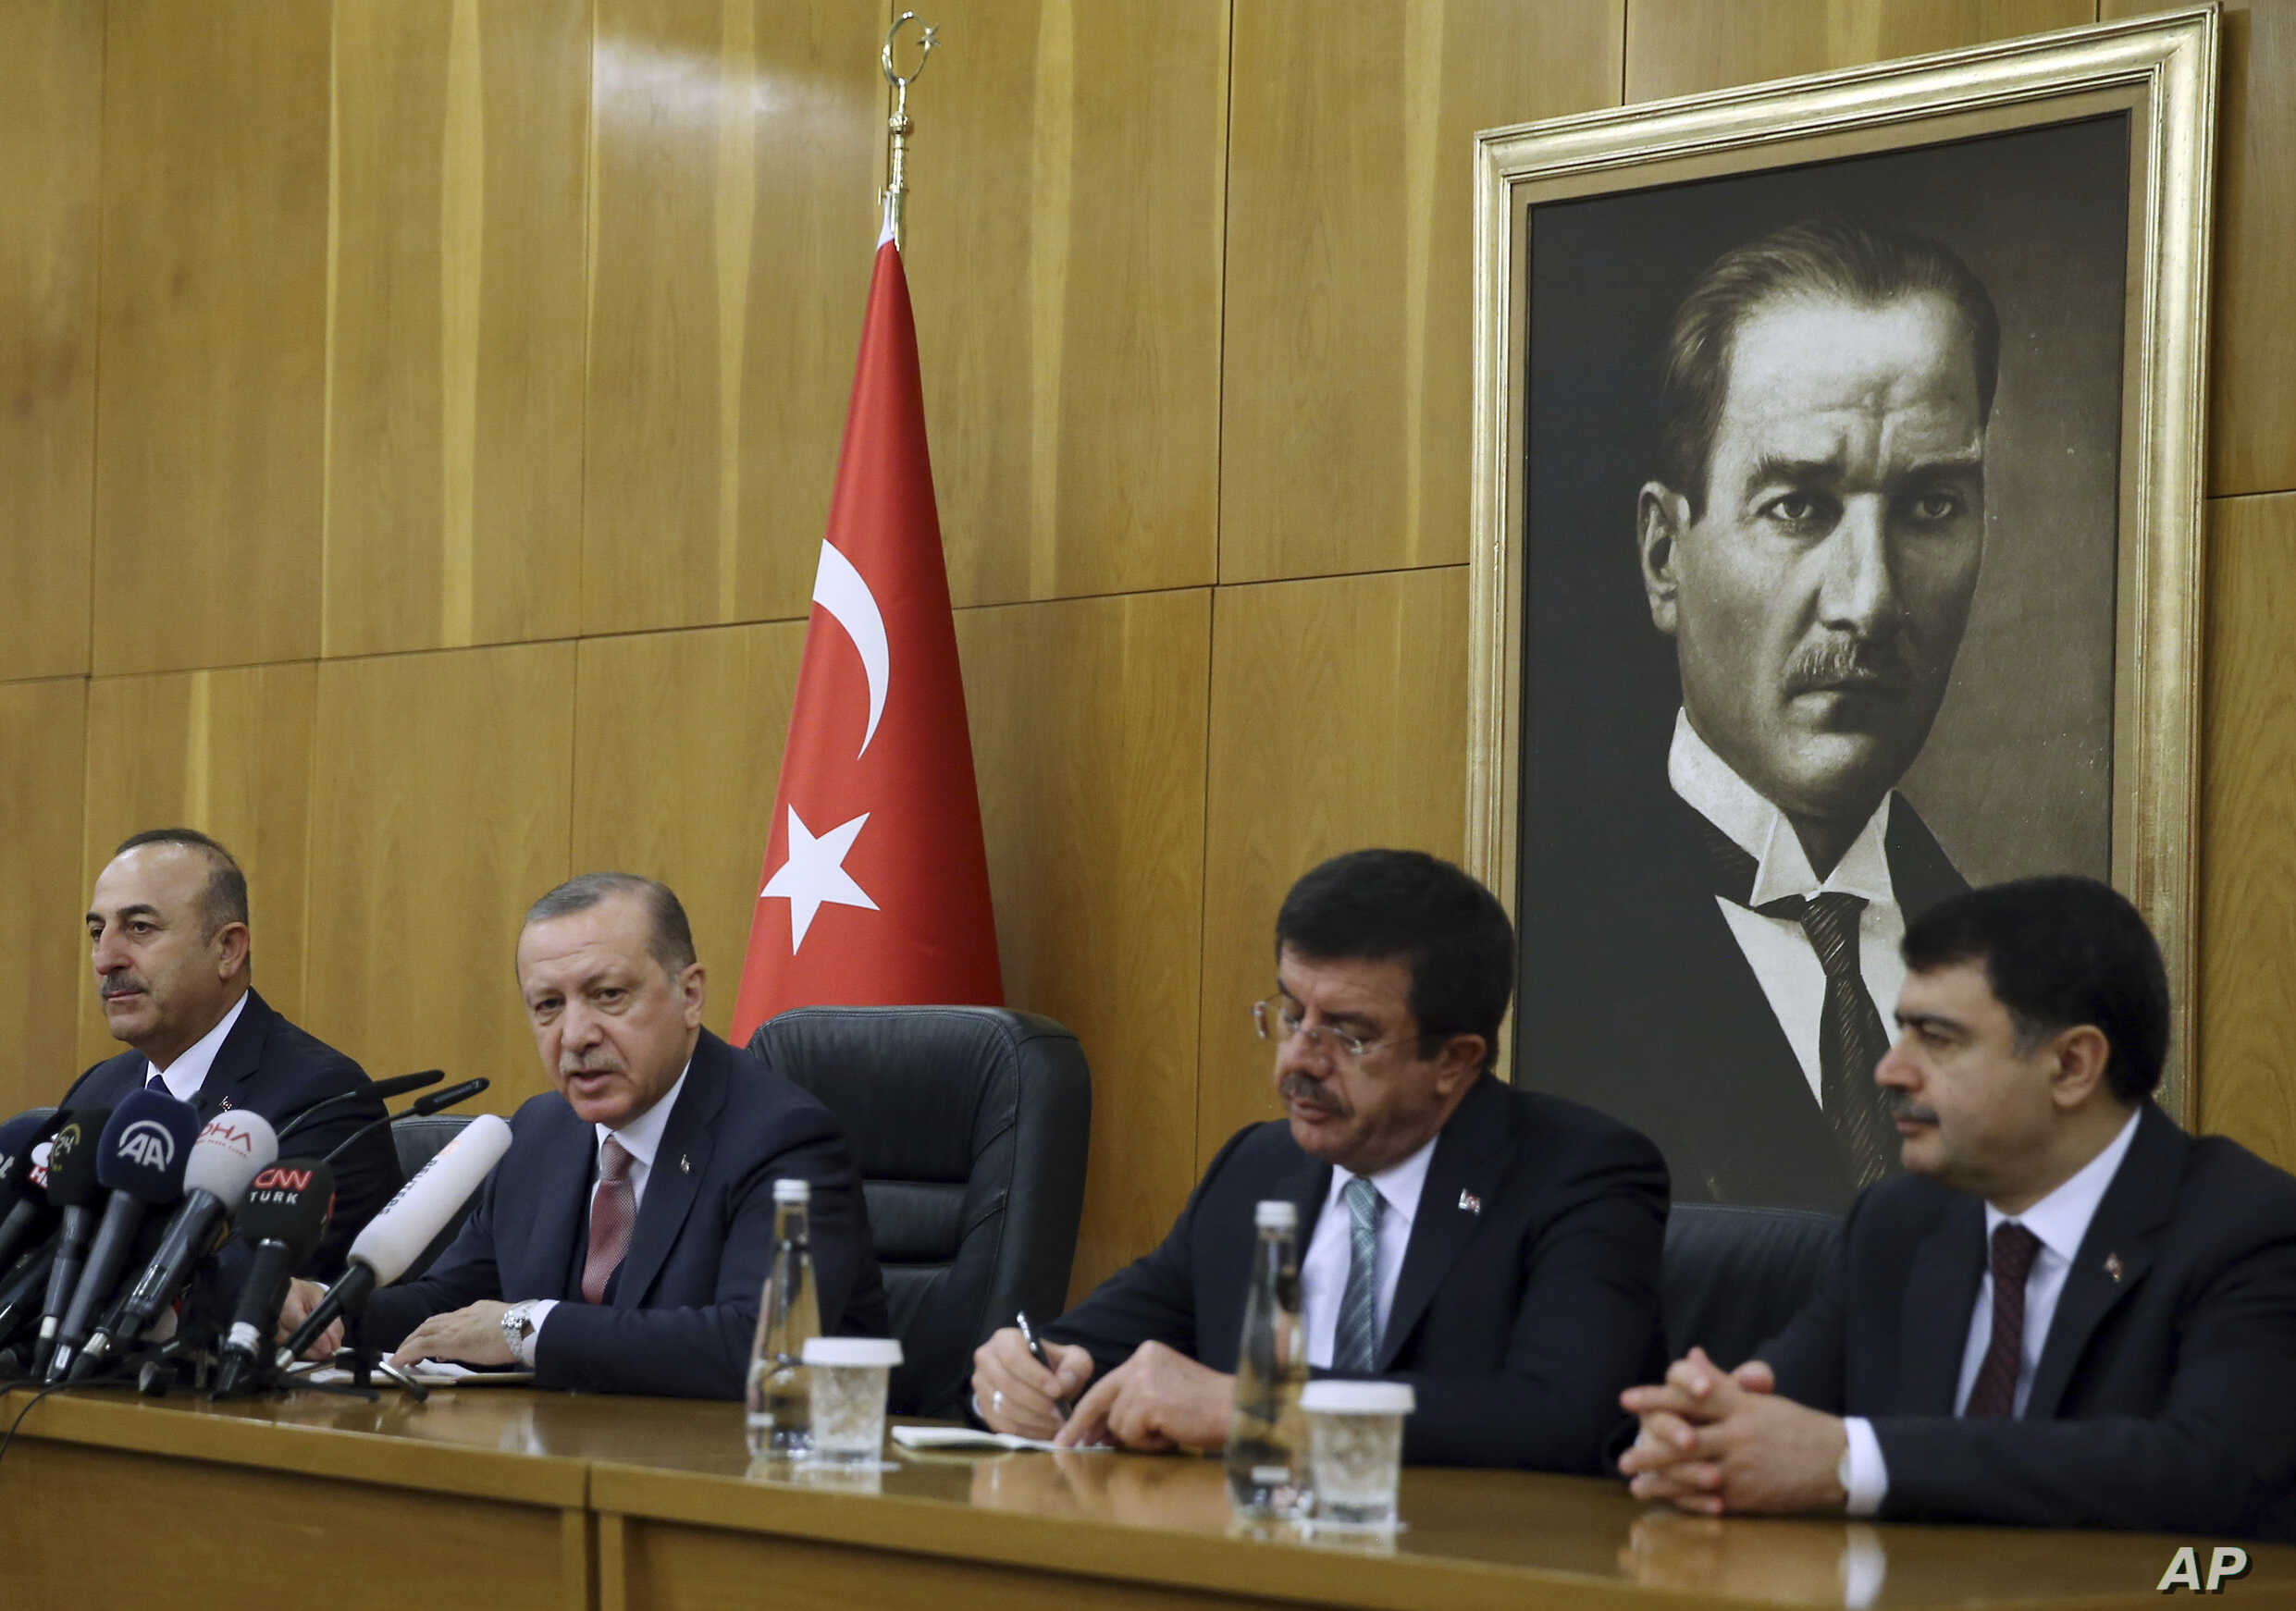 FILE - Turkish President Recep Tayyip Erdogan, second left, flanked by Foreign Minister Mevlut Cavusoglu, left, Economy Minister Nihat Zeybekci, second right, and Istanbul Gov. Vasip Sahin, speaks to reporters in Istanbul, Jan. 5, 2018. Erdogan slamm...